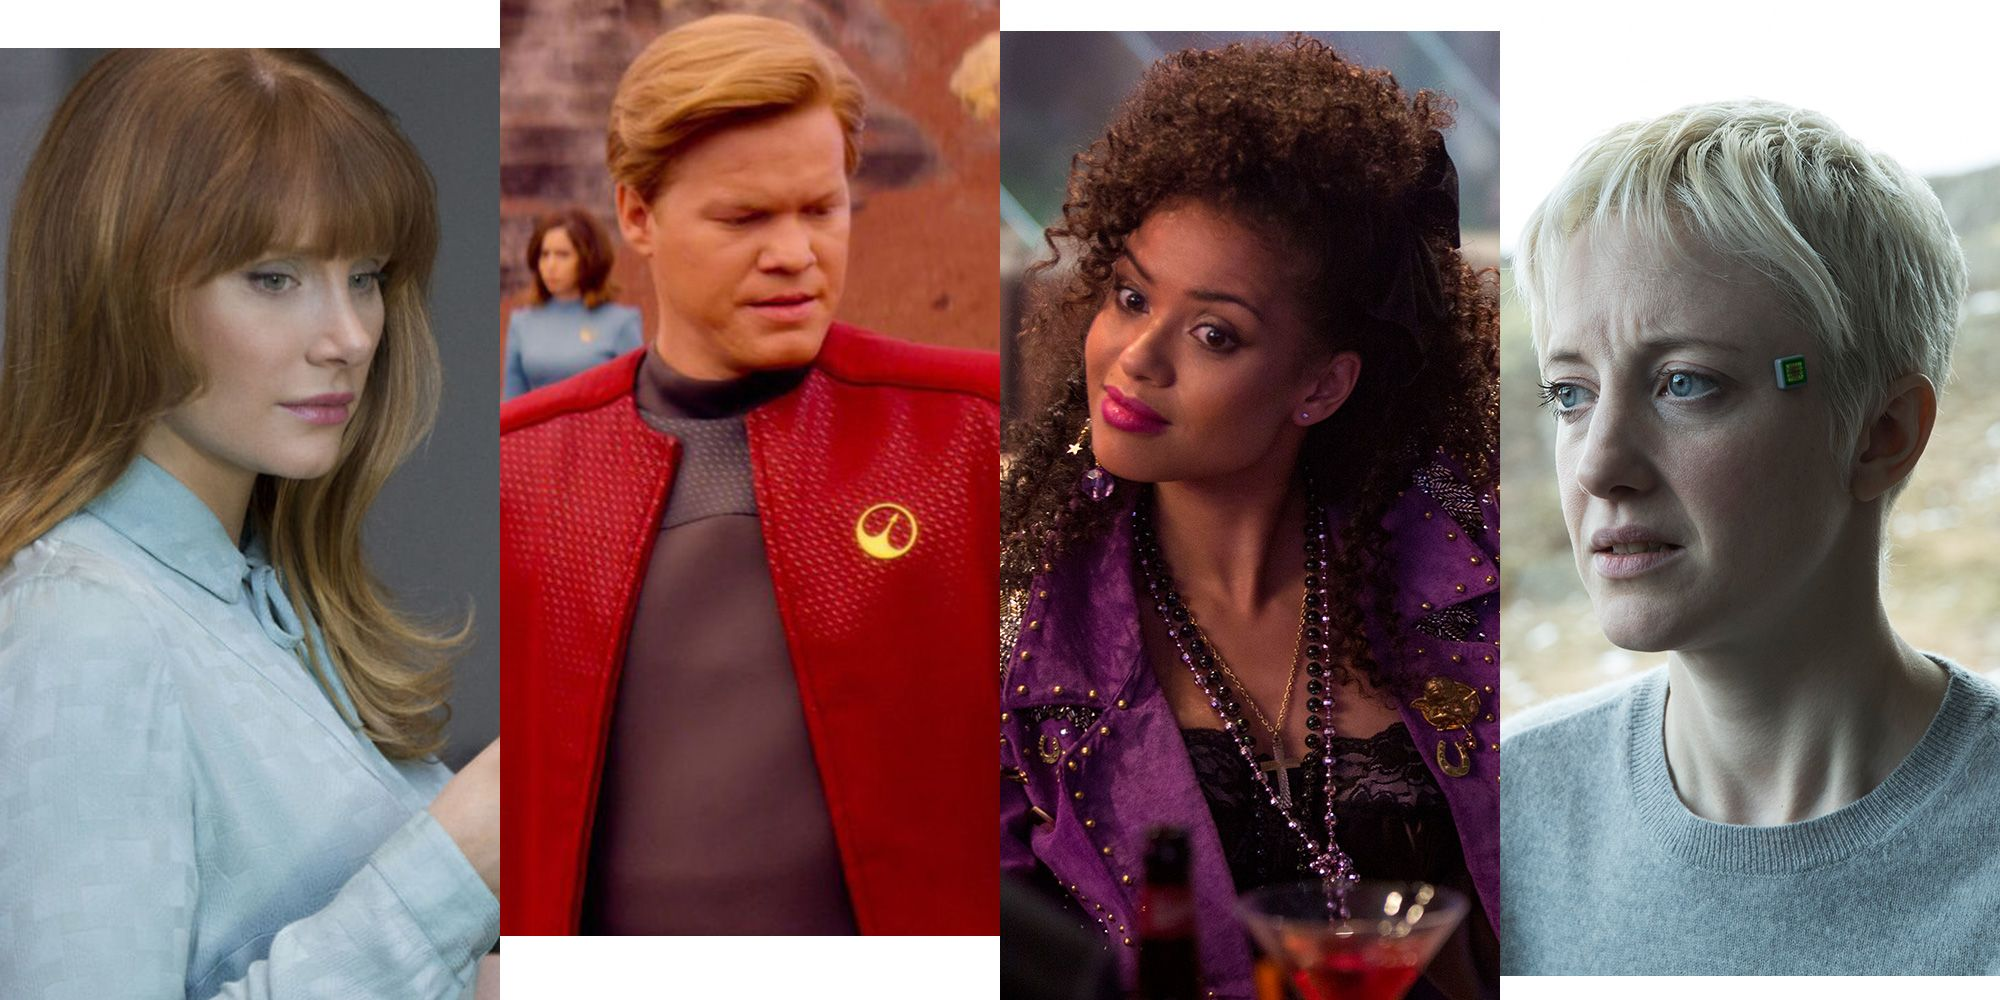 Every Episode of Black Mirror, Ranked